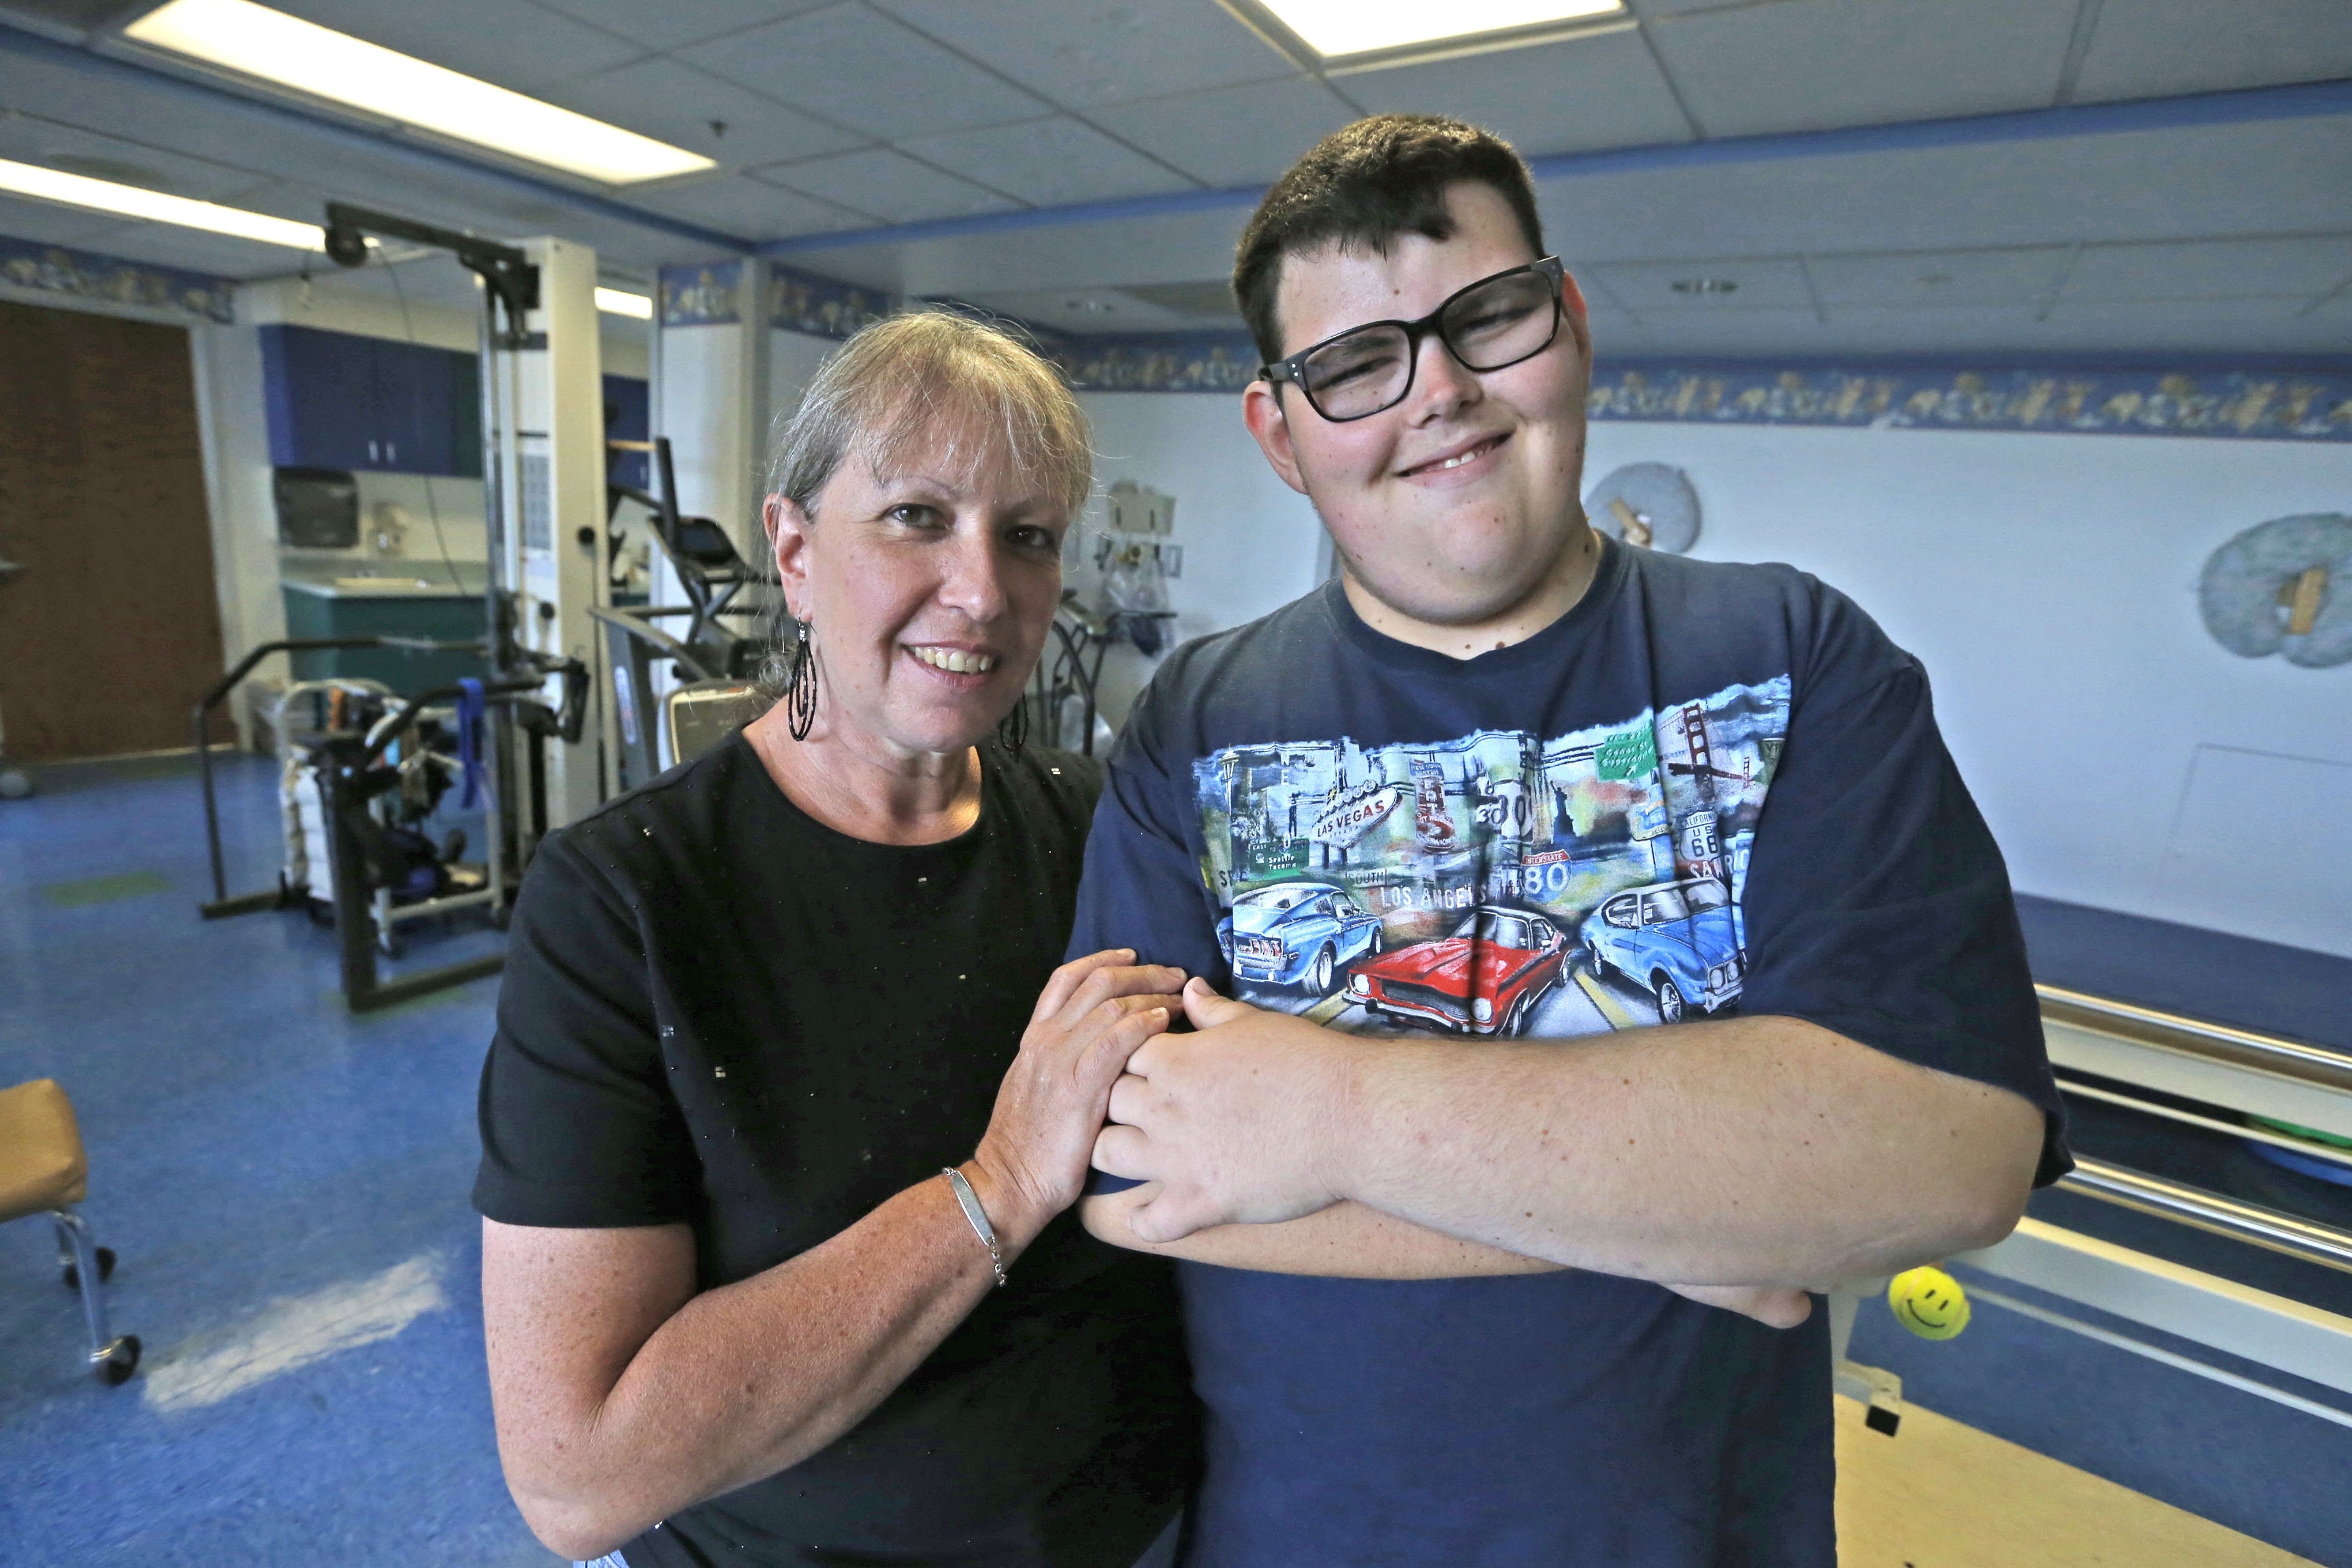 Ethan Milich, 18, of Amherst, and his mother Jennifer turned to the Children's Healthy Weigh of Buffalo to help them create better eating habits.